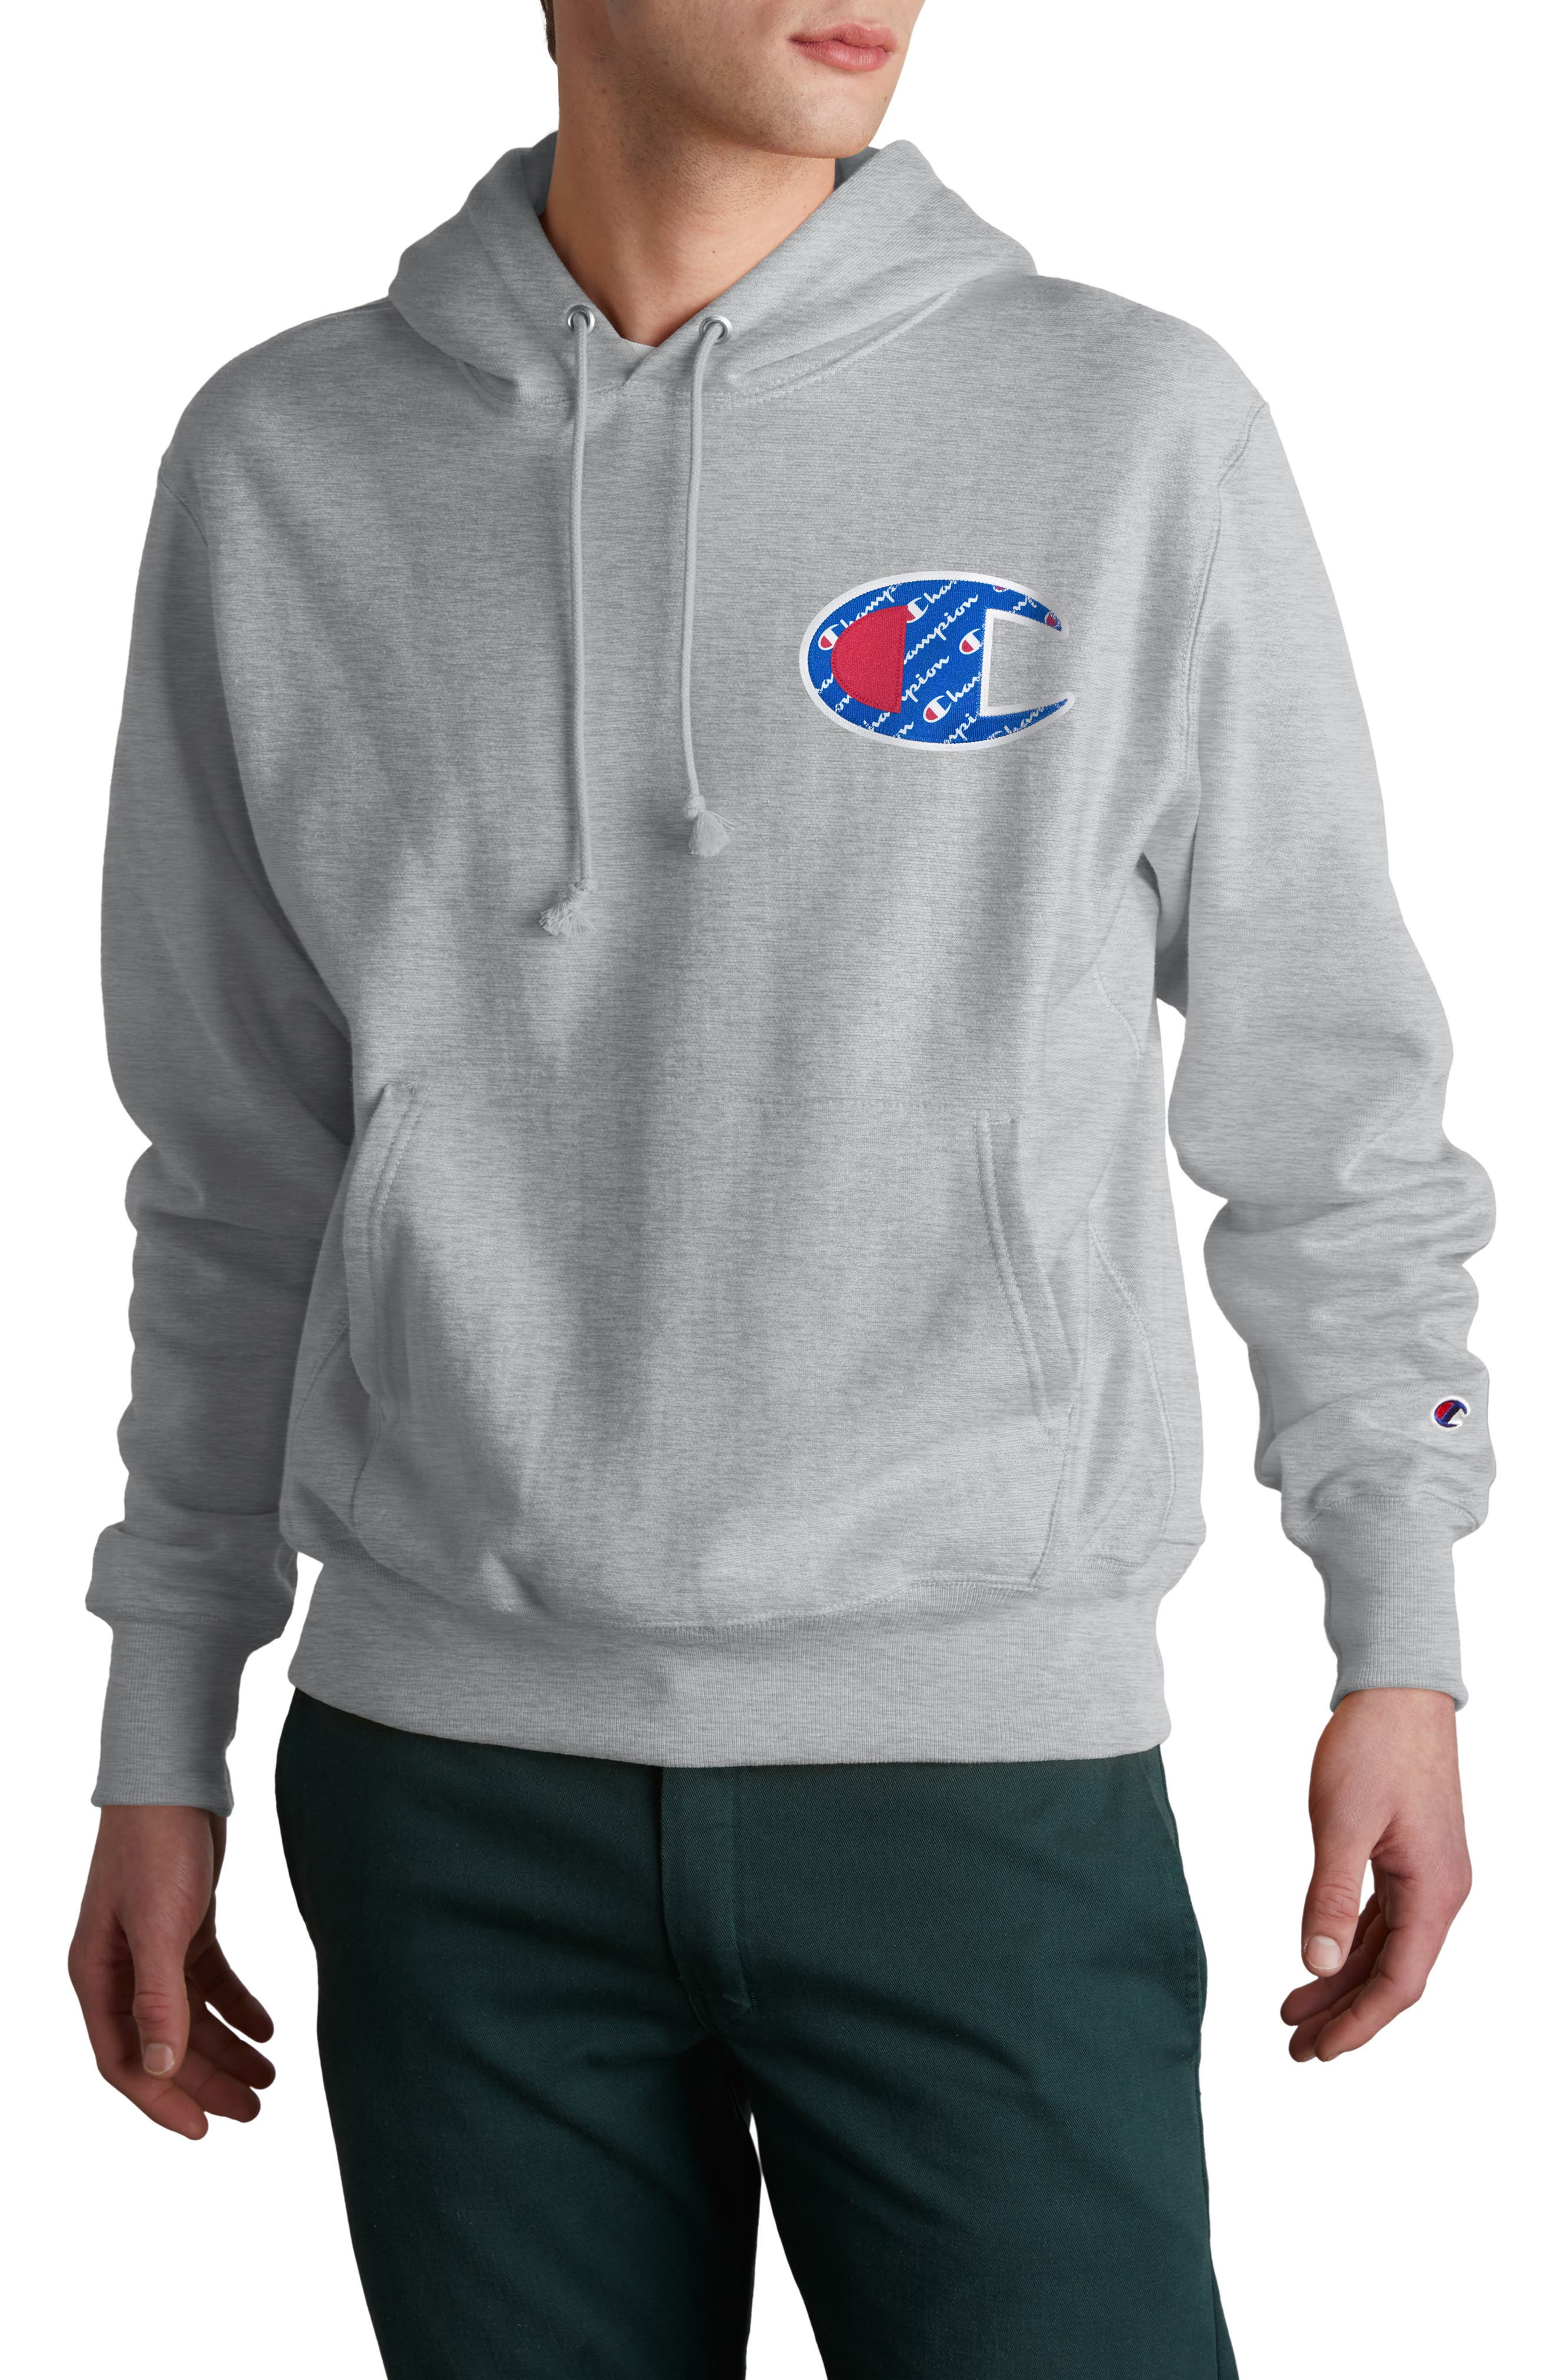 CHAMPION, Sublimated Graphic Hoodie, Main thumbnail 1, color, OXFORD GRAY